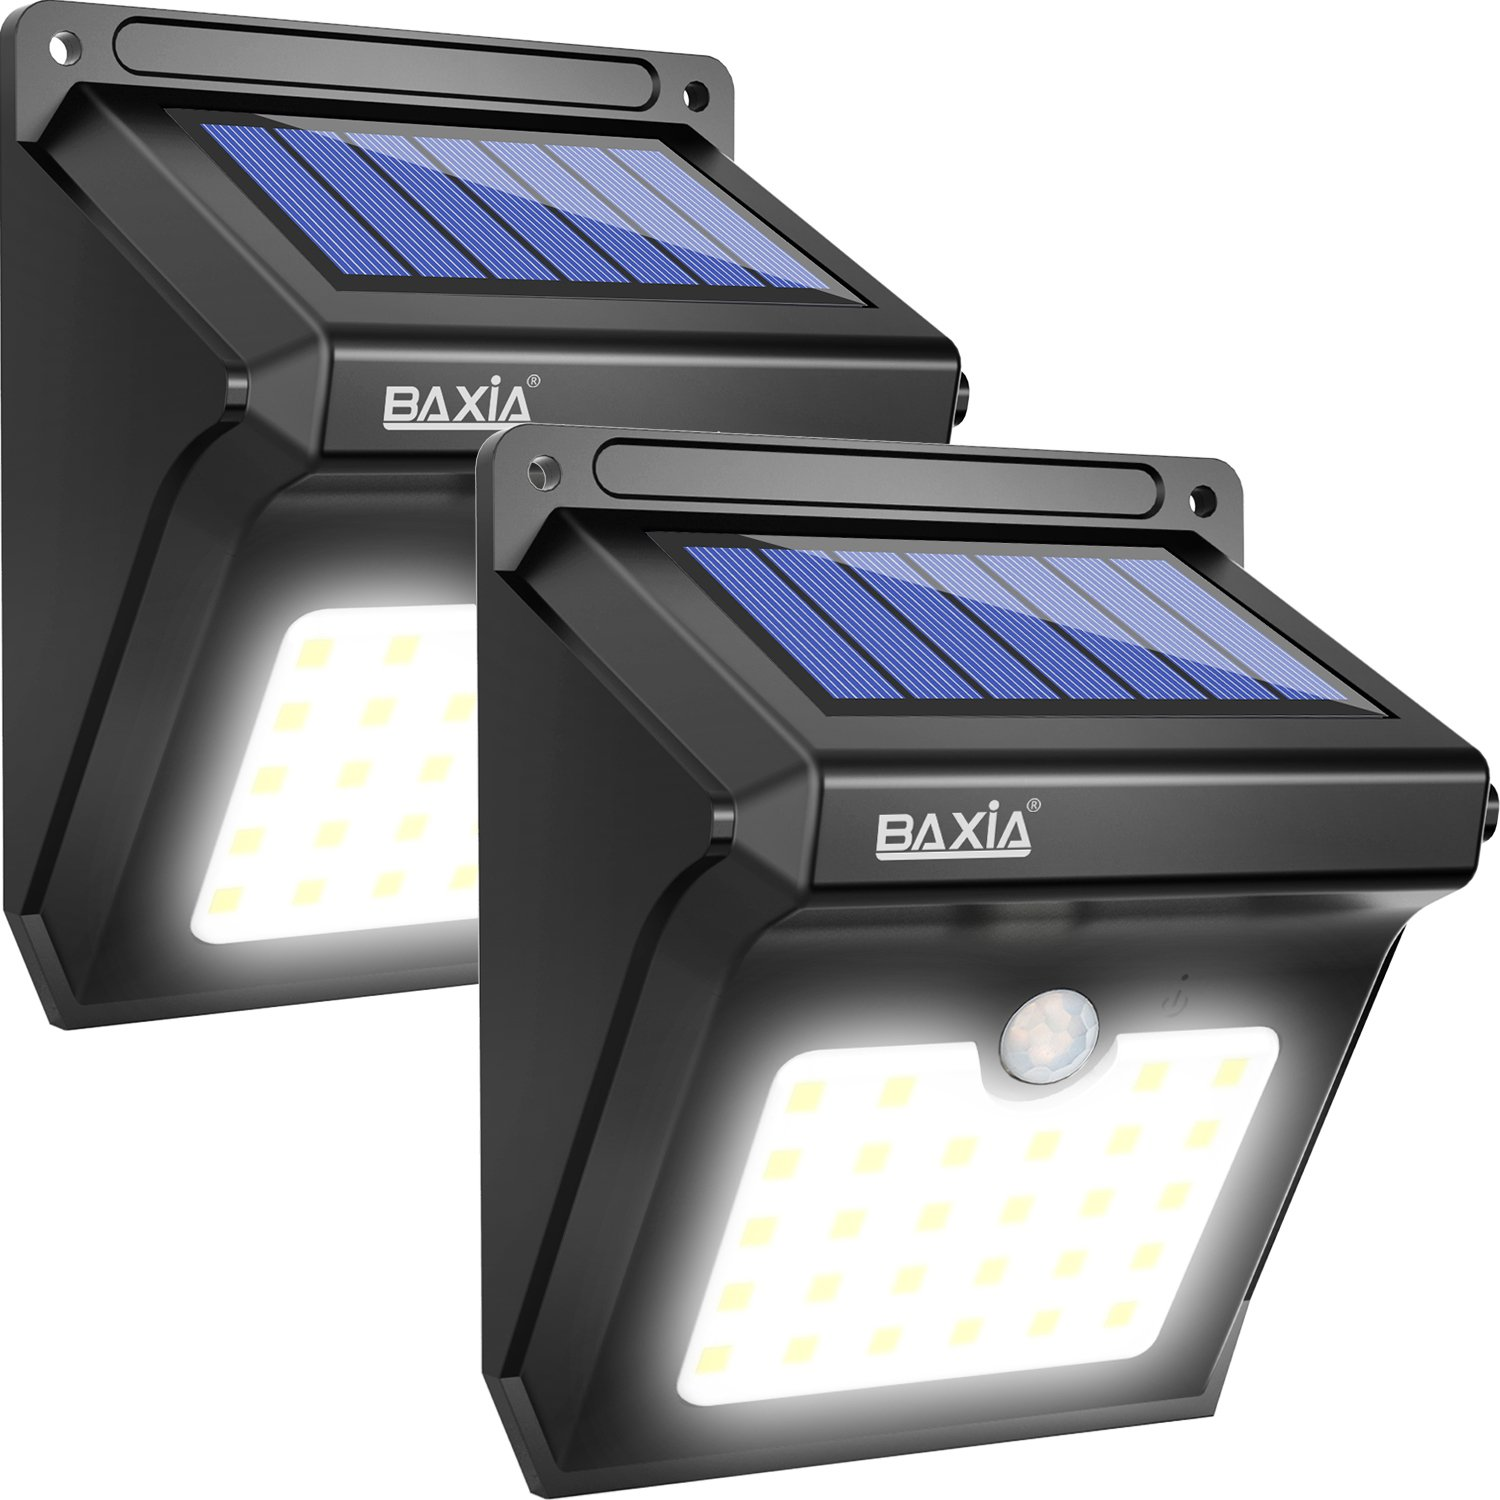 BAXIA Technology LED Solar Lights Outdoor, 400 Lumens Wireless Waterproof Motion Sensor Security Lights for Front Door,Outside Wall,Back Yard,Garage,Garden,Fence,Driveway [Upgraded 28LED 2 Packs] by BAXIA TECHNOLOGY